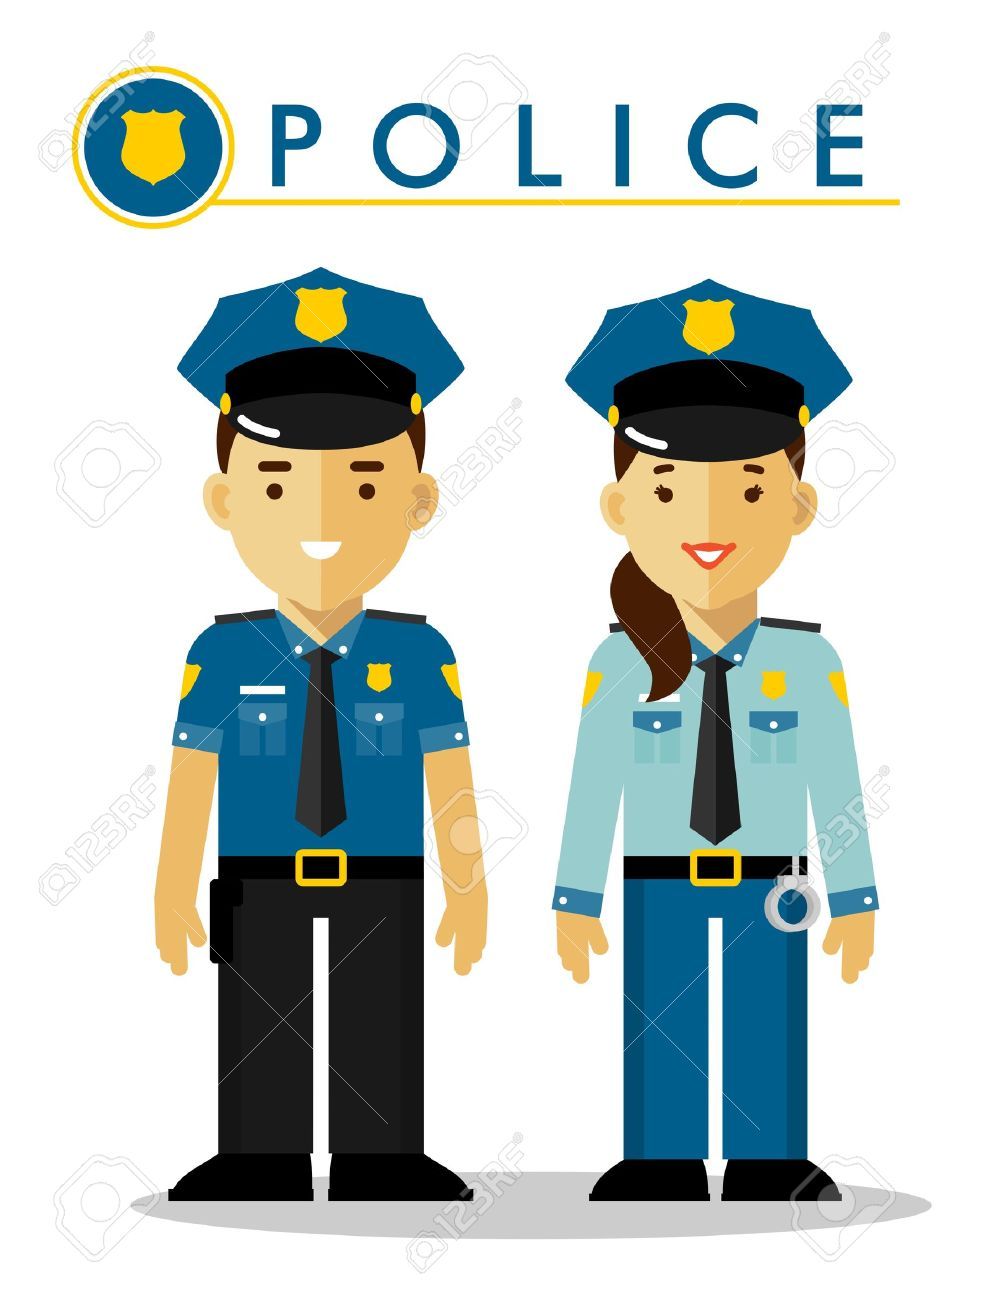 74 678 police officer stock illustrations cliparts and royalty free rh 123rf com police officer clip art step by step police officer clip art image